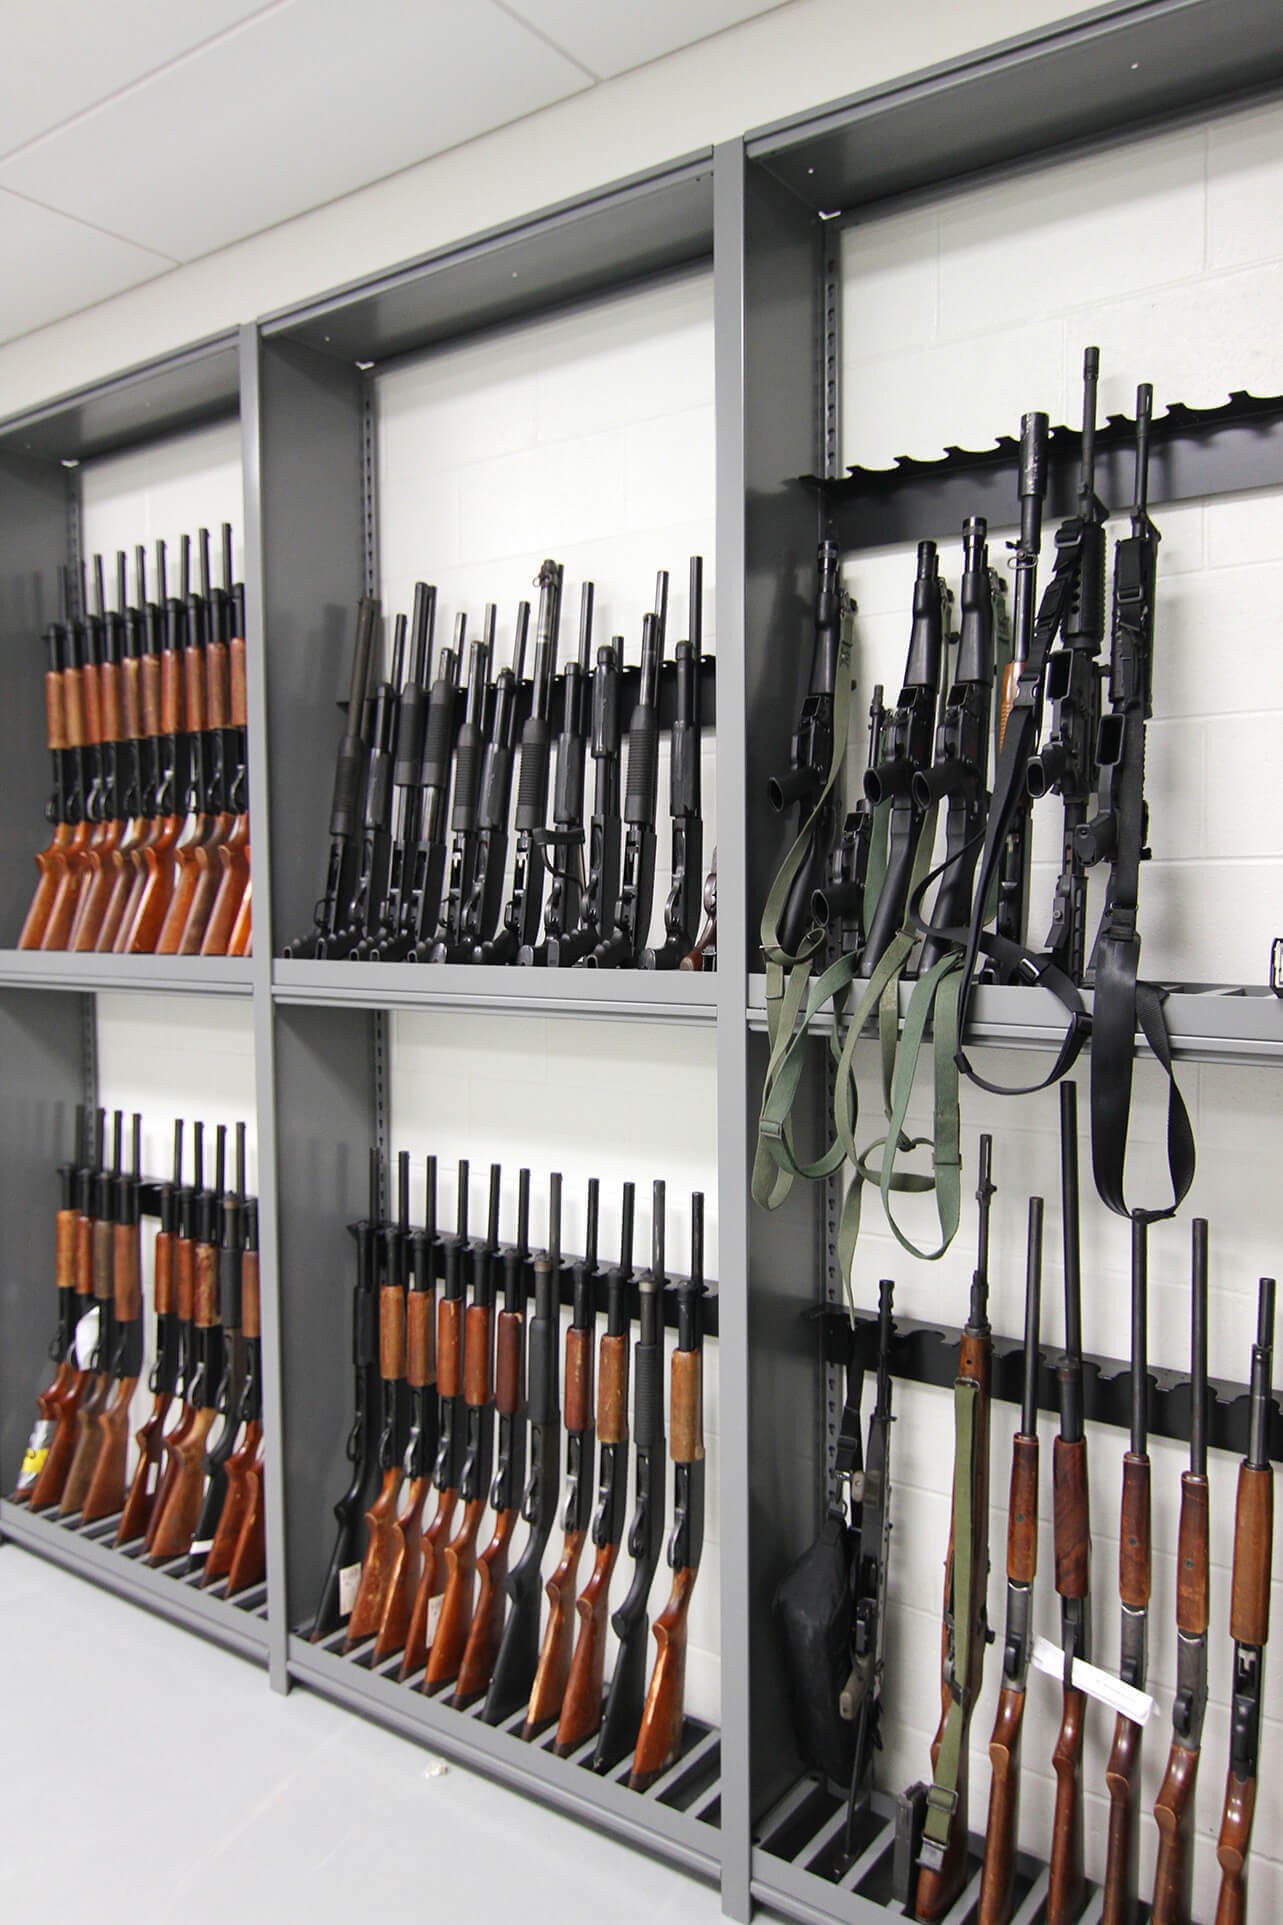 Weapons rack holding police department weapons